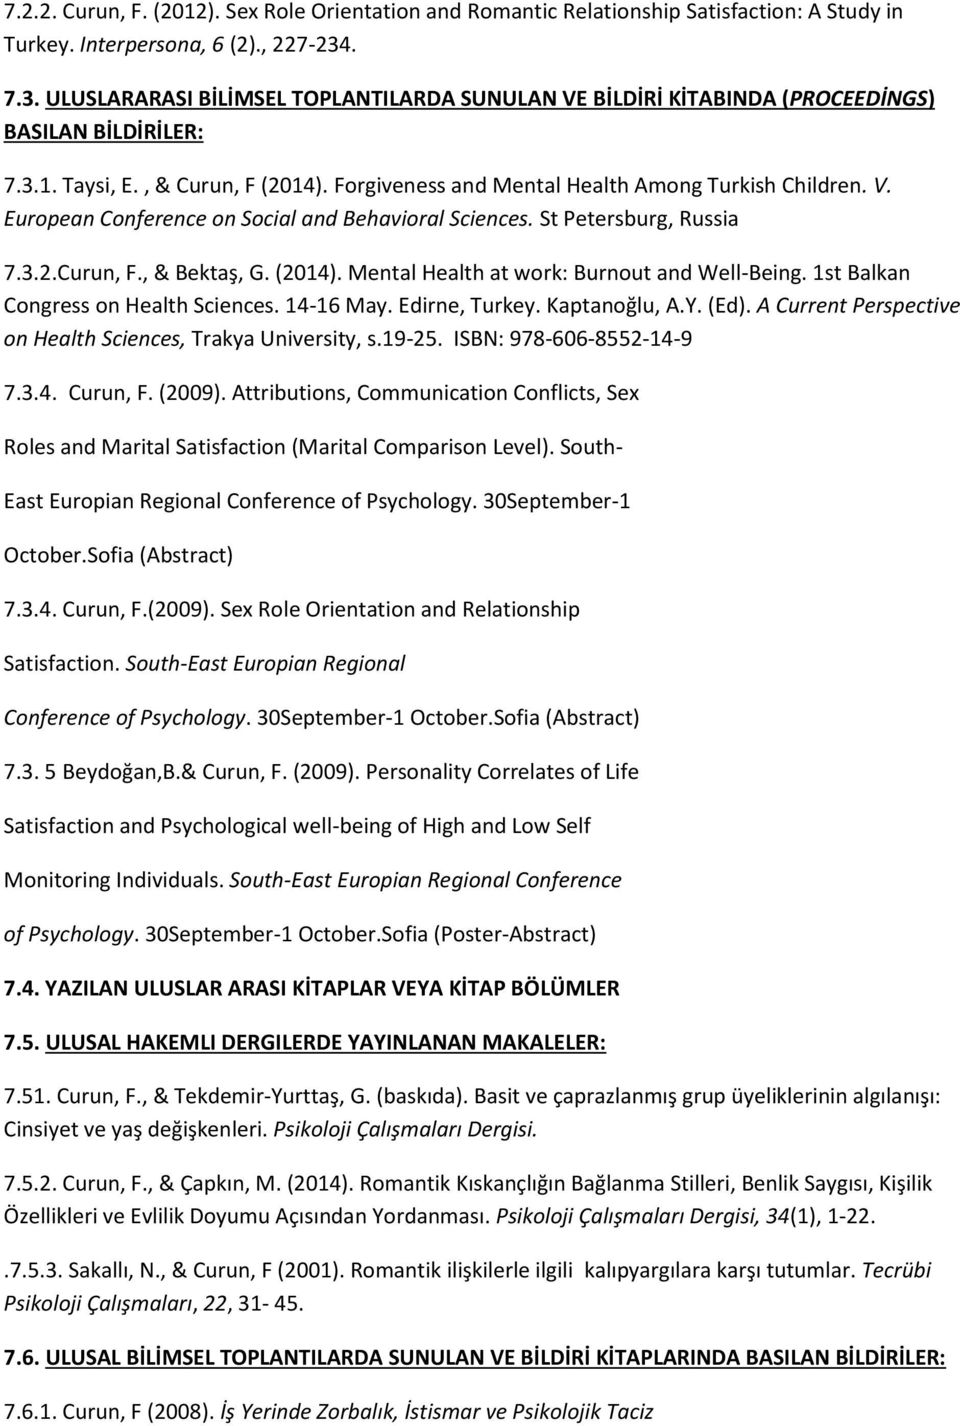 St Petersburg, Russia 7.3.2.Curun, F., & Bektaş, G. (2014). Mental Health at work: Burnout and Well-Being. 1st Balkan Congress on Health Sciences. 14-16 May. Edirne, Turkey. Kaptanoğlu, A.Y. (Ed).